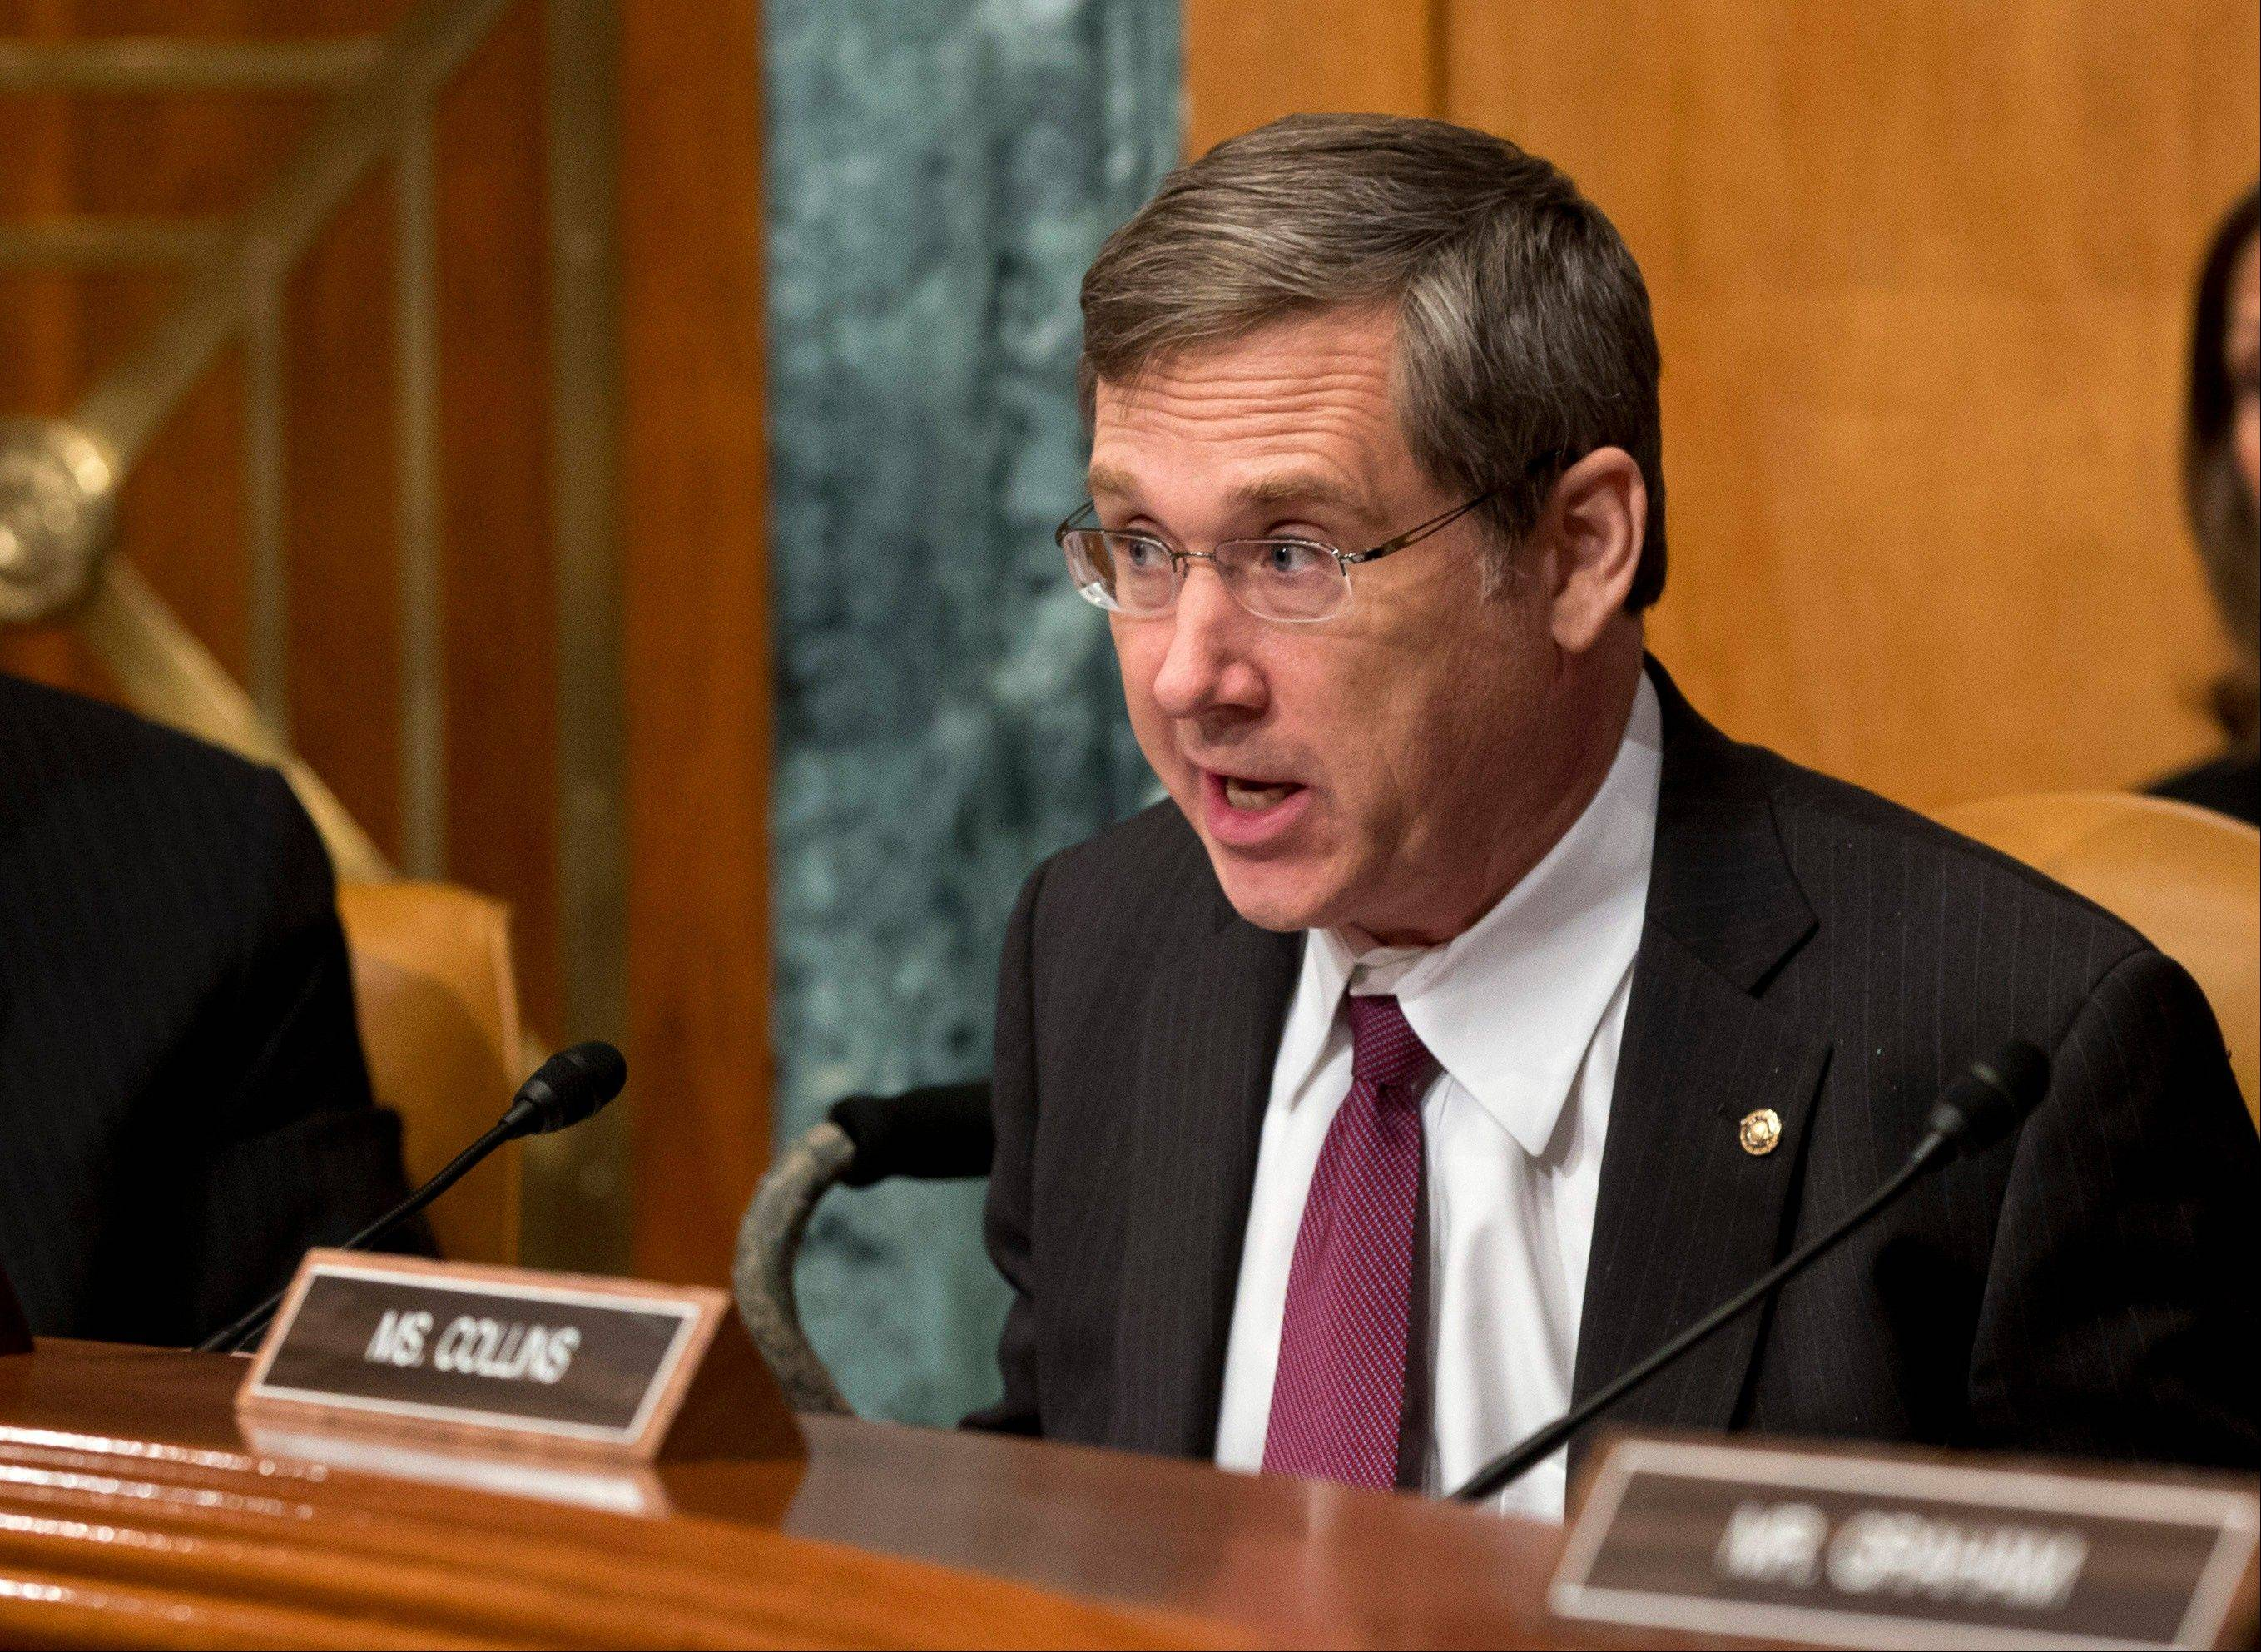 Sen. Mark Kirk, R-Ill., said Thursday, June 20, 2013, he�s been working with colleagues to craft immigration reform that�s gaining momentum in the Senate. He says the measure will secure the U.S. border to the south and create a �tough but fair� path to citizenship.